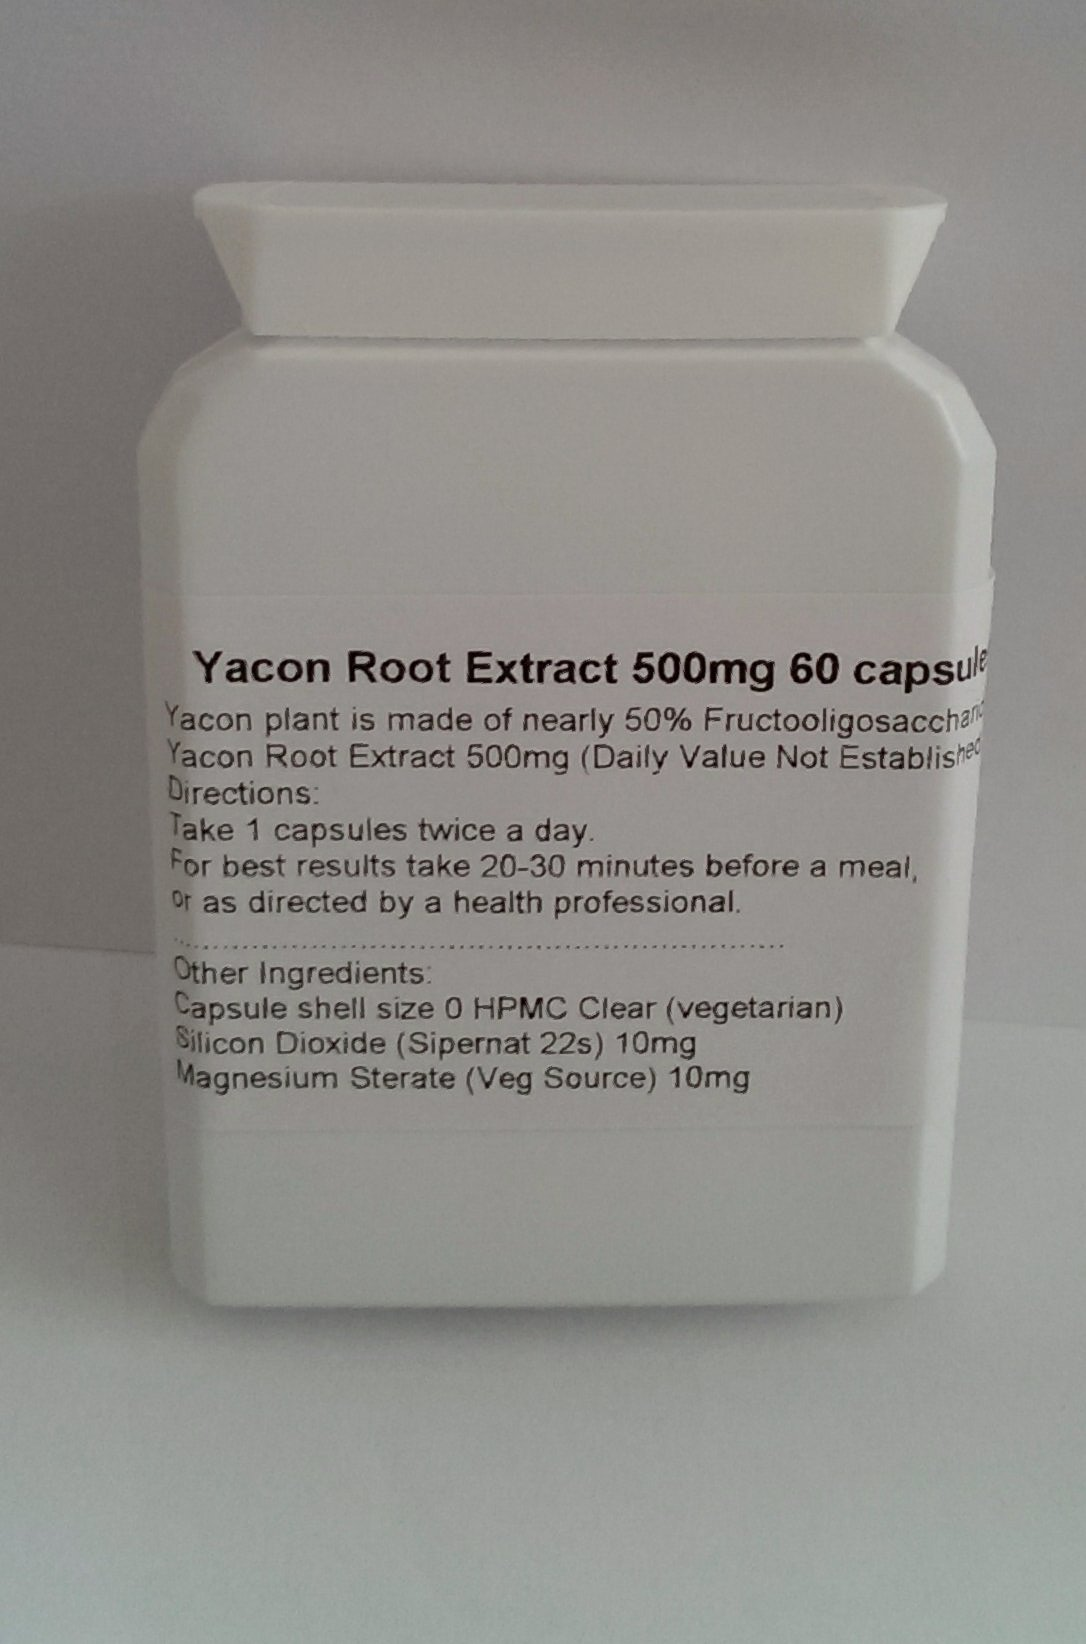 Yacon Root Extract 500mg 60 capsules